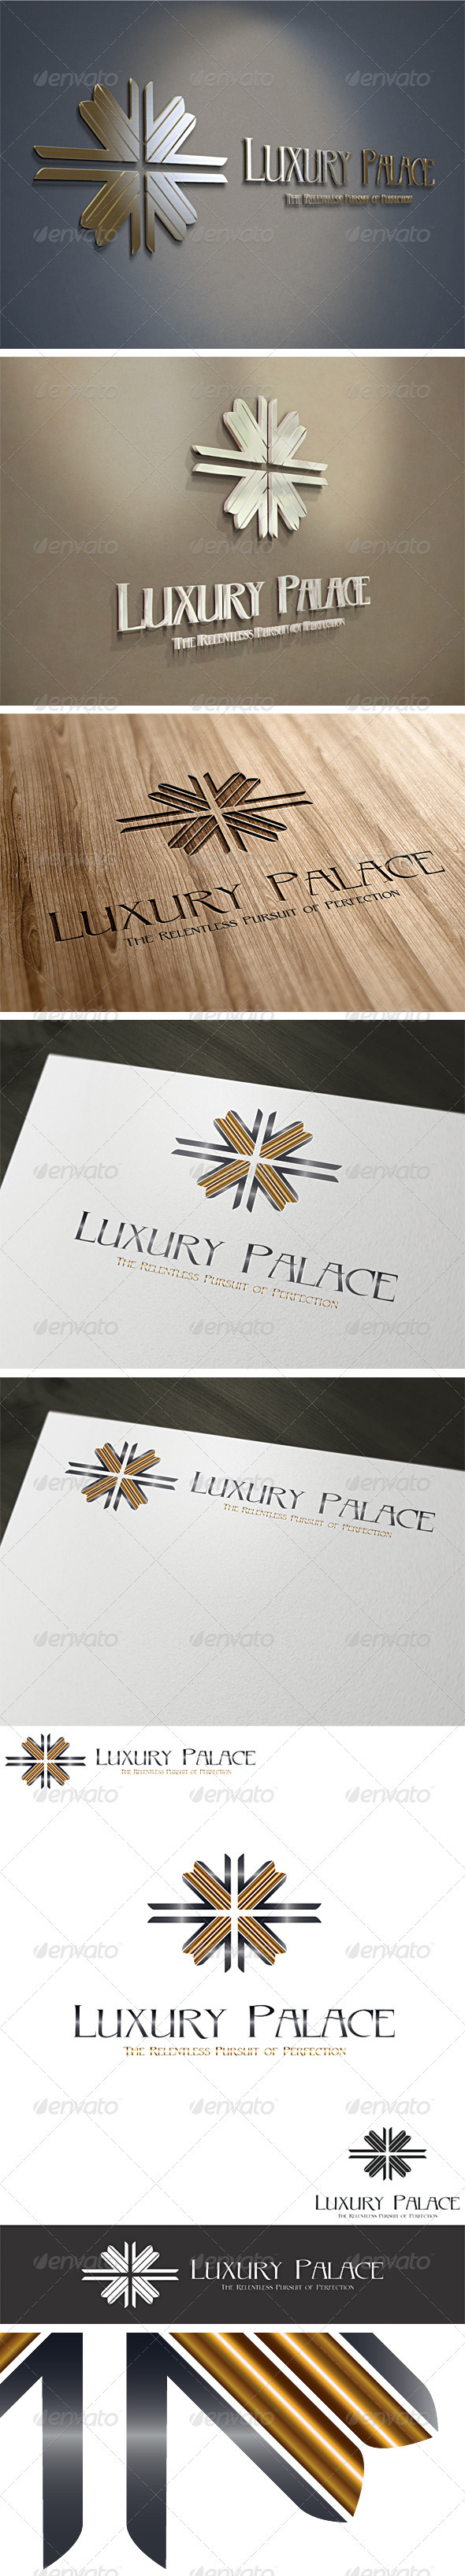 3D Luxury Hotels Logo Template V3 - 3d Abstract